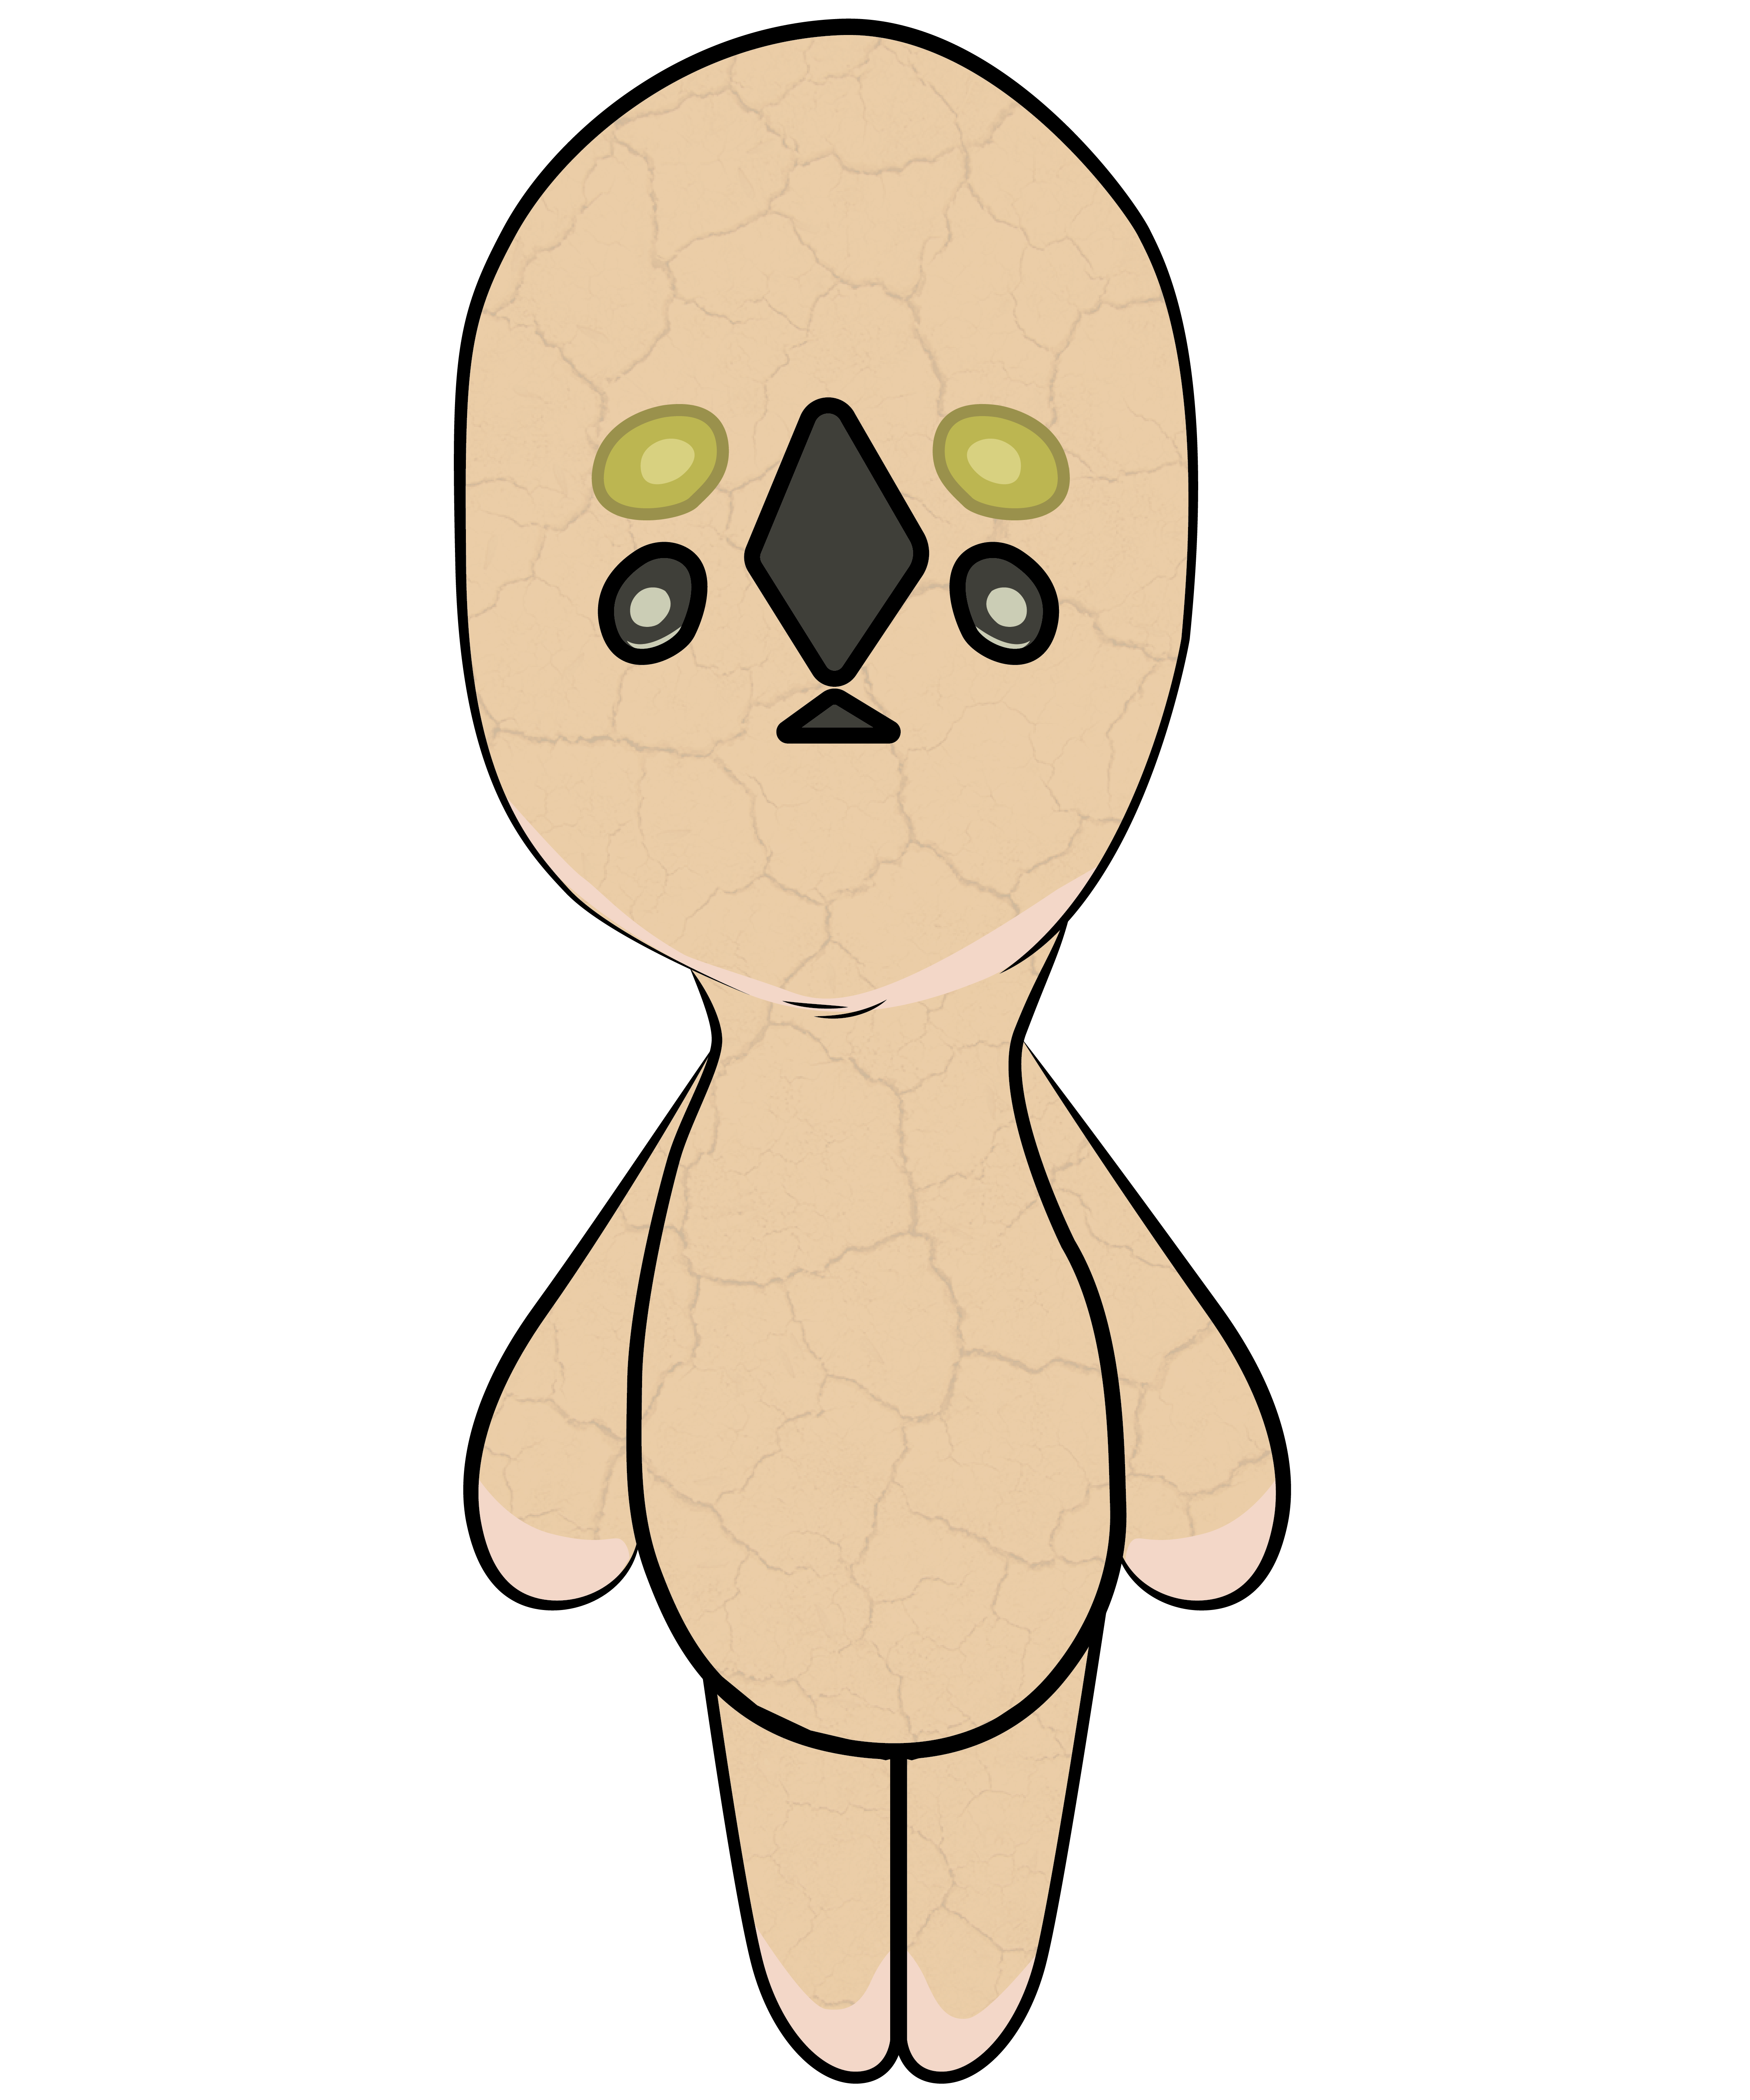 Scp 173 Statue Monster Blink Secure Contain Scary Creepypasta Sticker By Yellowdellow Scp Scary Creepypasta Weird Creatures